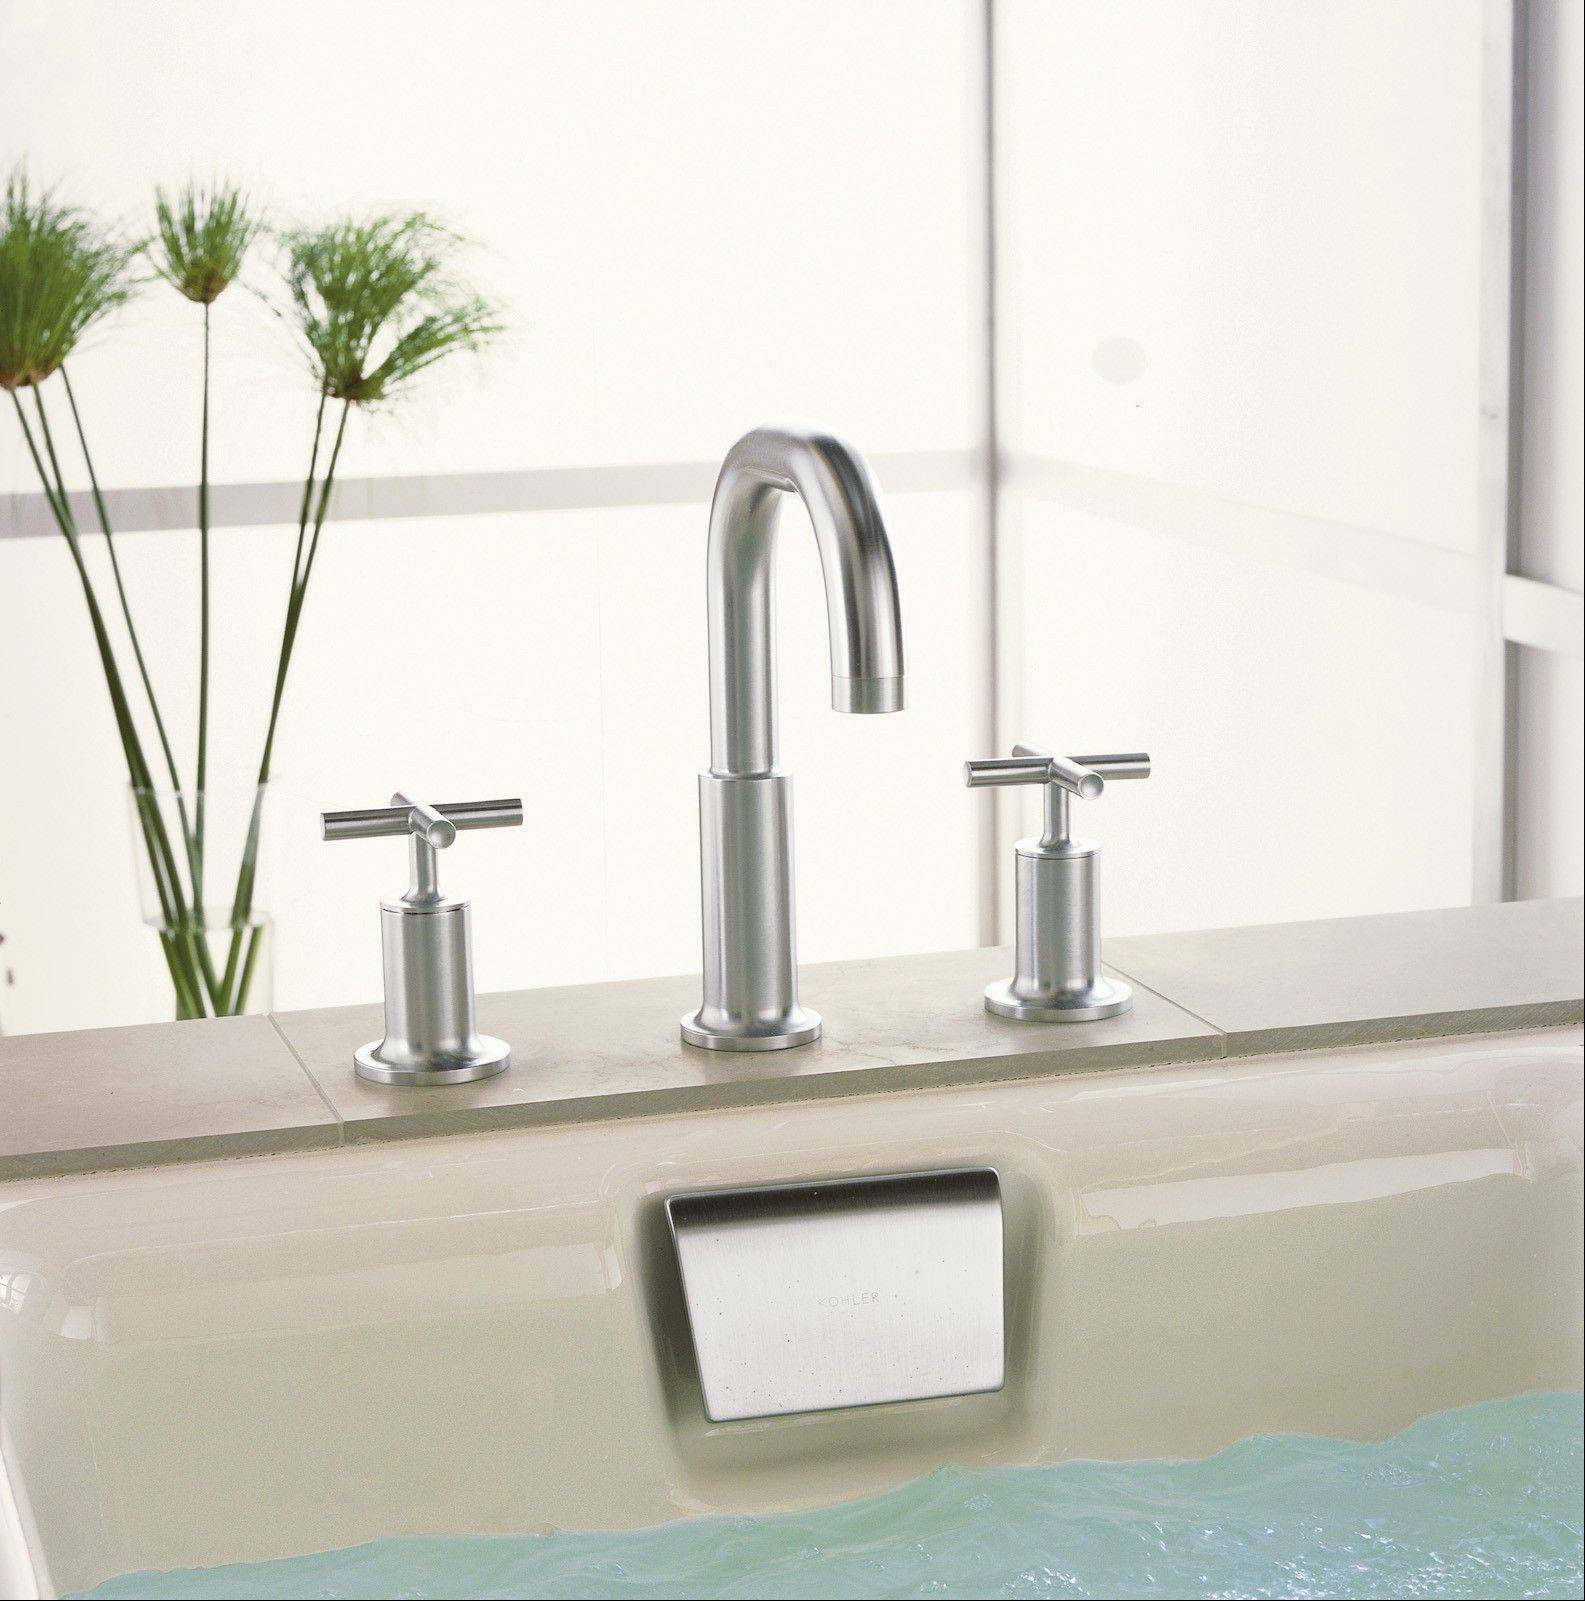 Tub fillers can look and operate like a regular two-handle bathroom faucet. But as you noticed, they�re usually larger than a standard sink faucet.